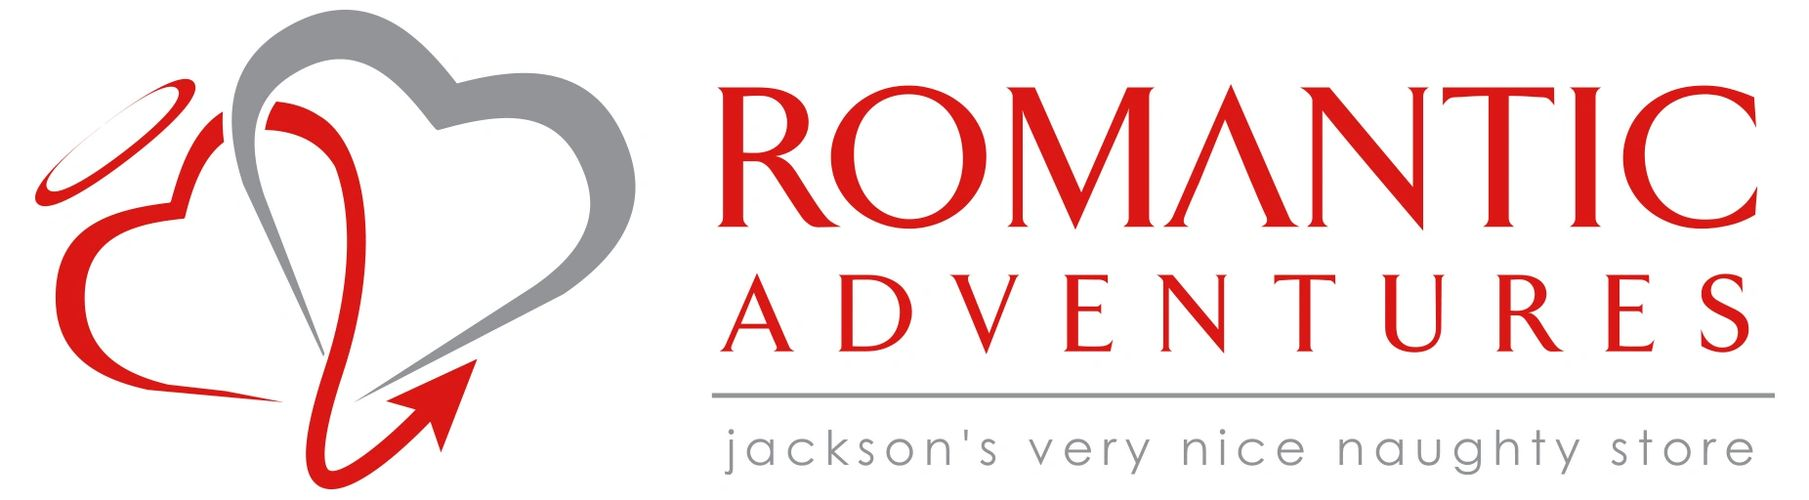 Romantic Adventures logo with 2 hearts